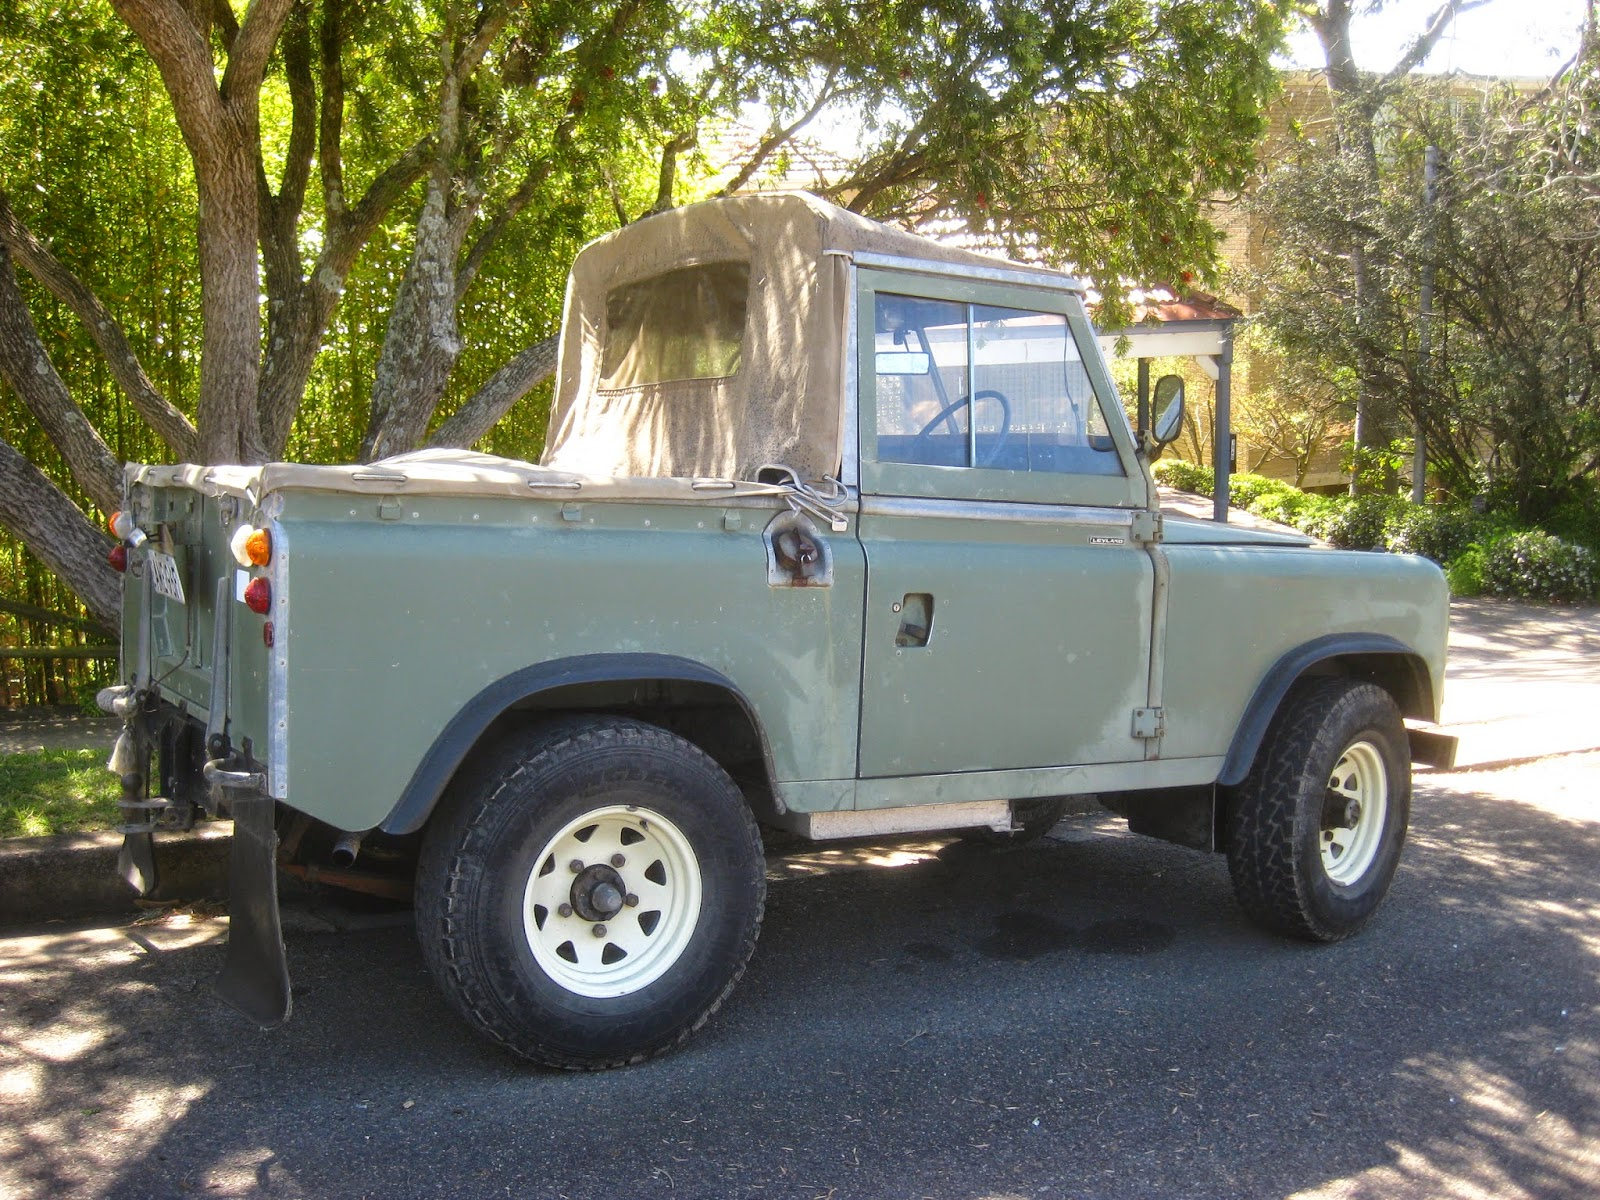 Aussie Old Parked Cars 1975 Land Rover Series III SWB Ute